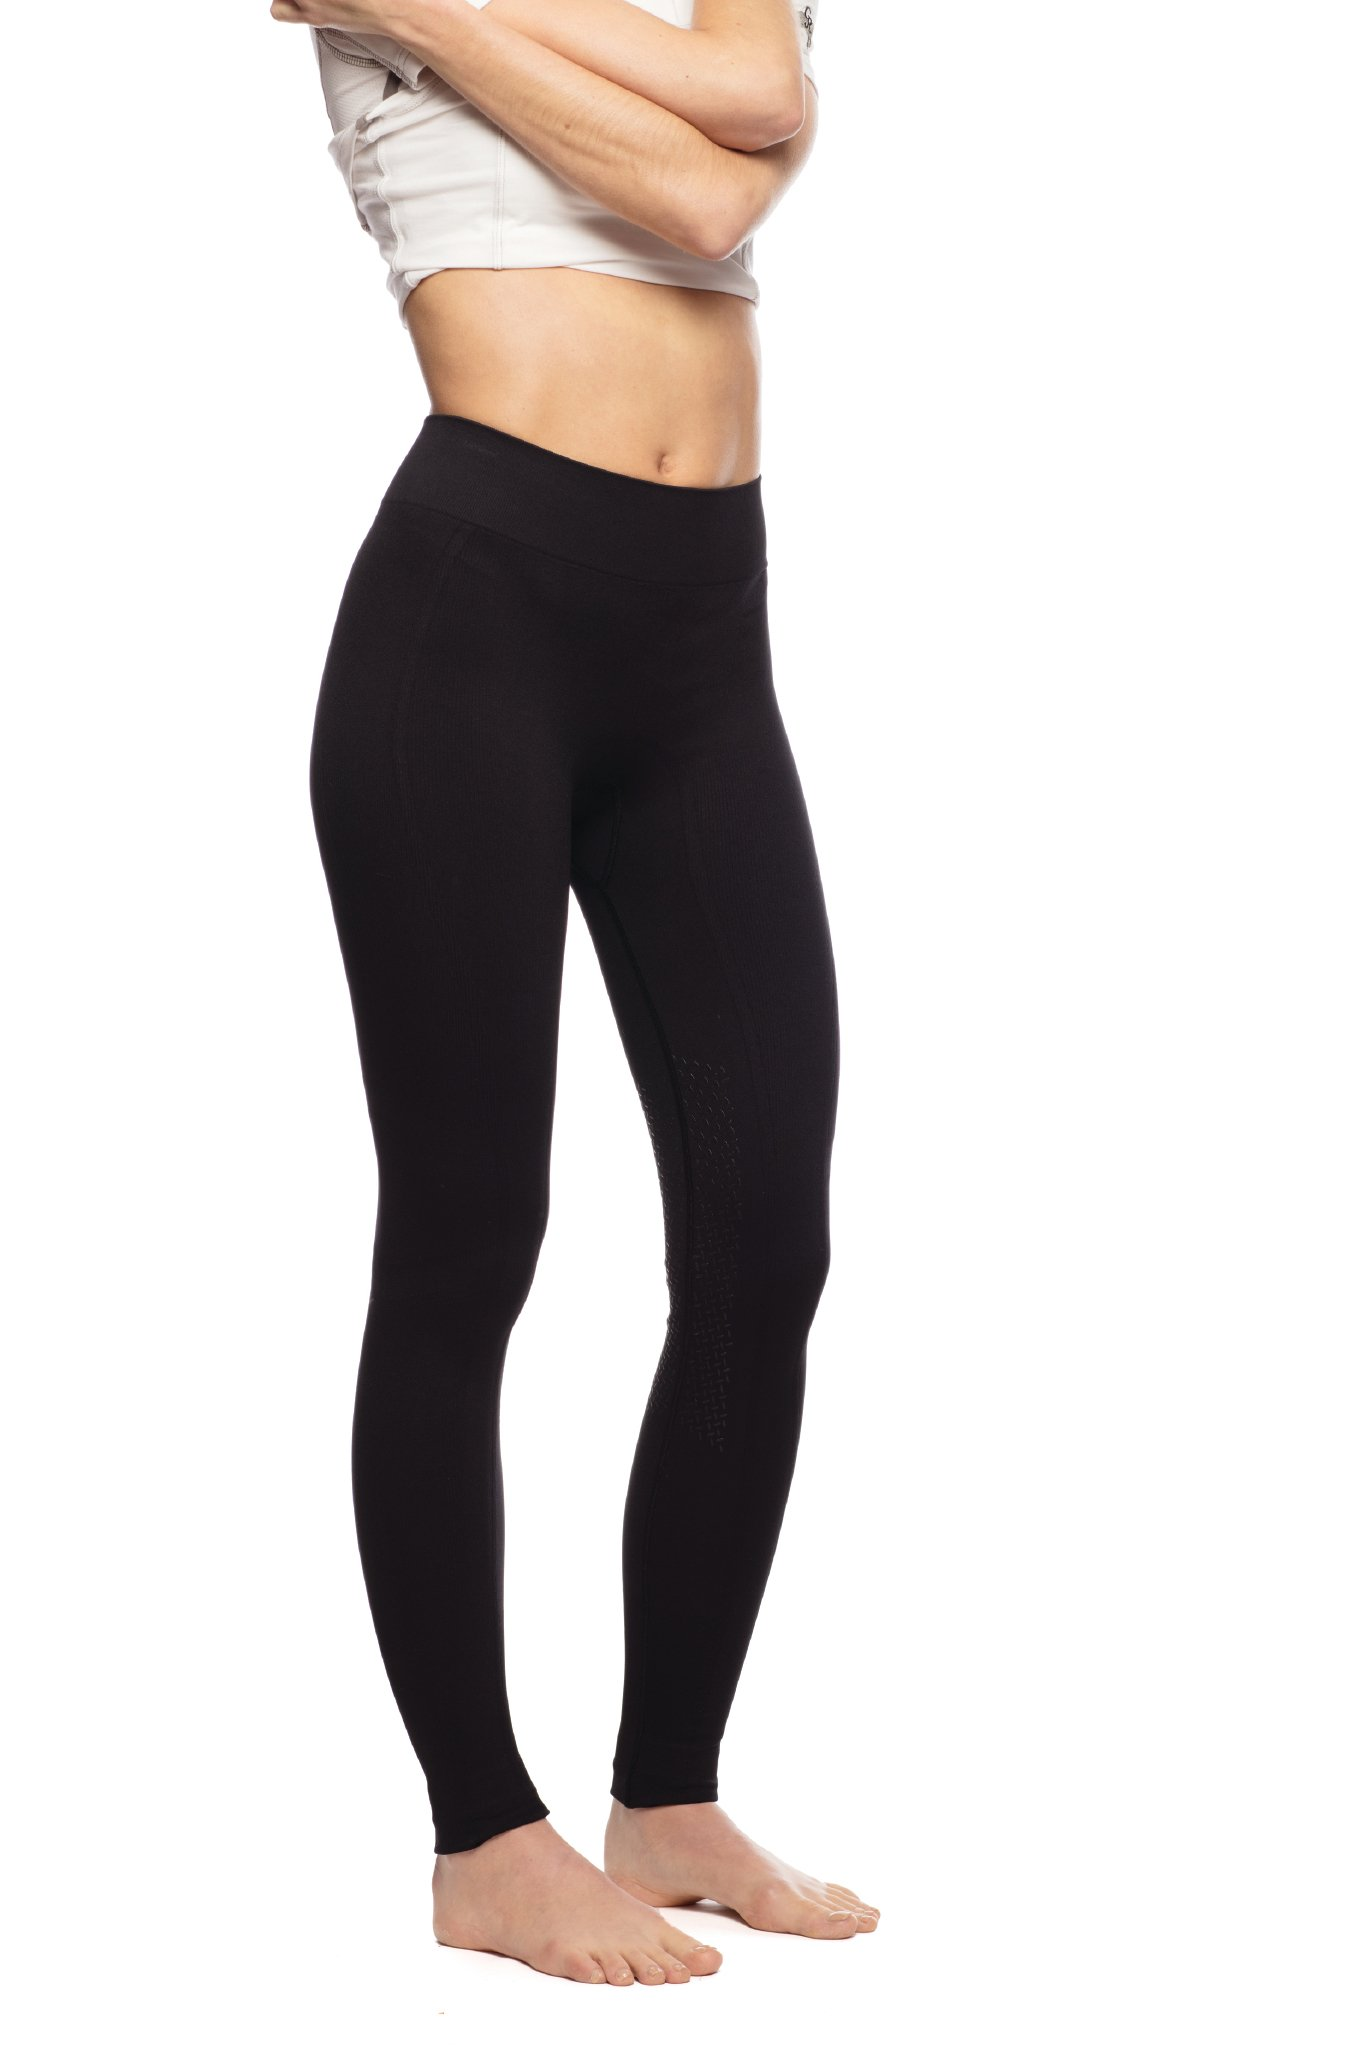 Goode Rider Bodysculpting Seamless Tights Knee Patch Black M